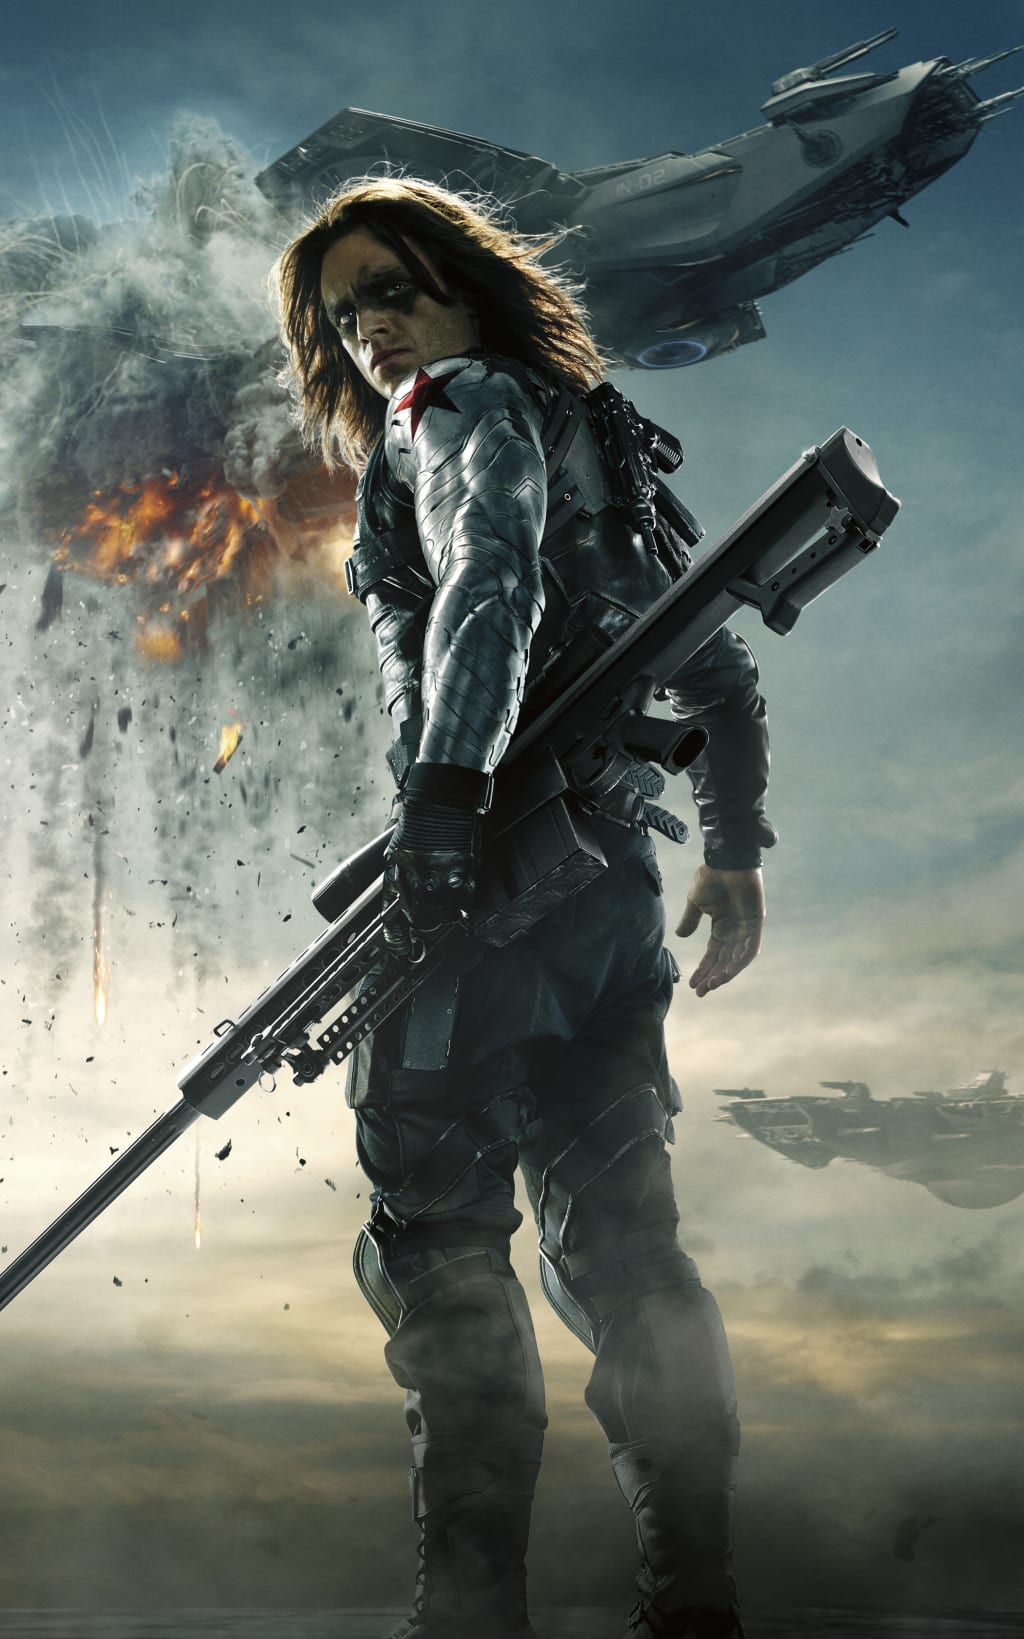 How To Build The Winter Soldier in The Pathfinder RPG